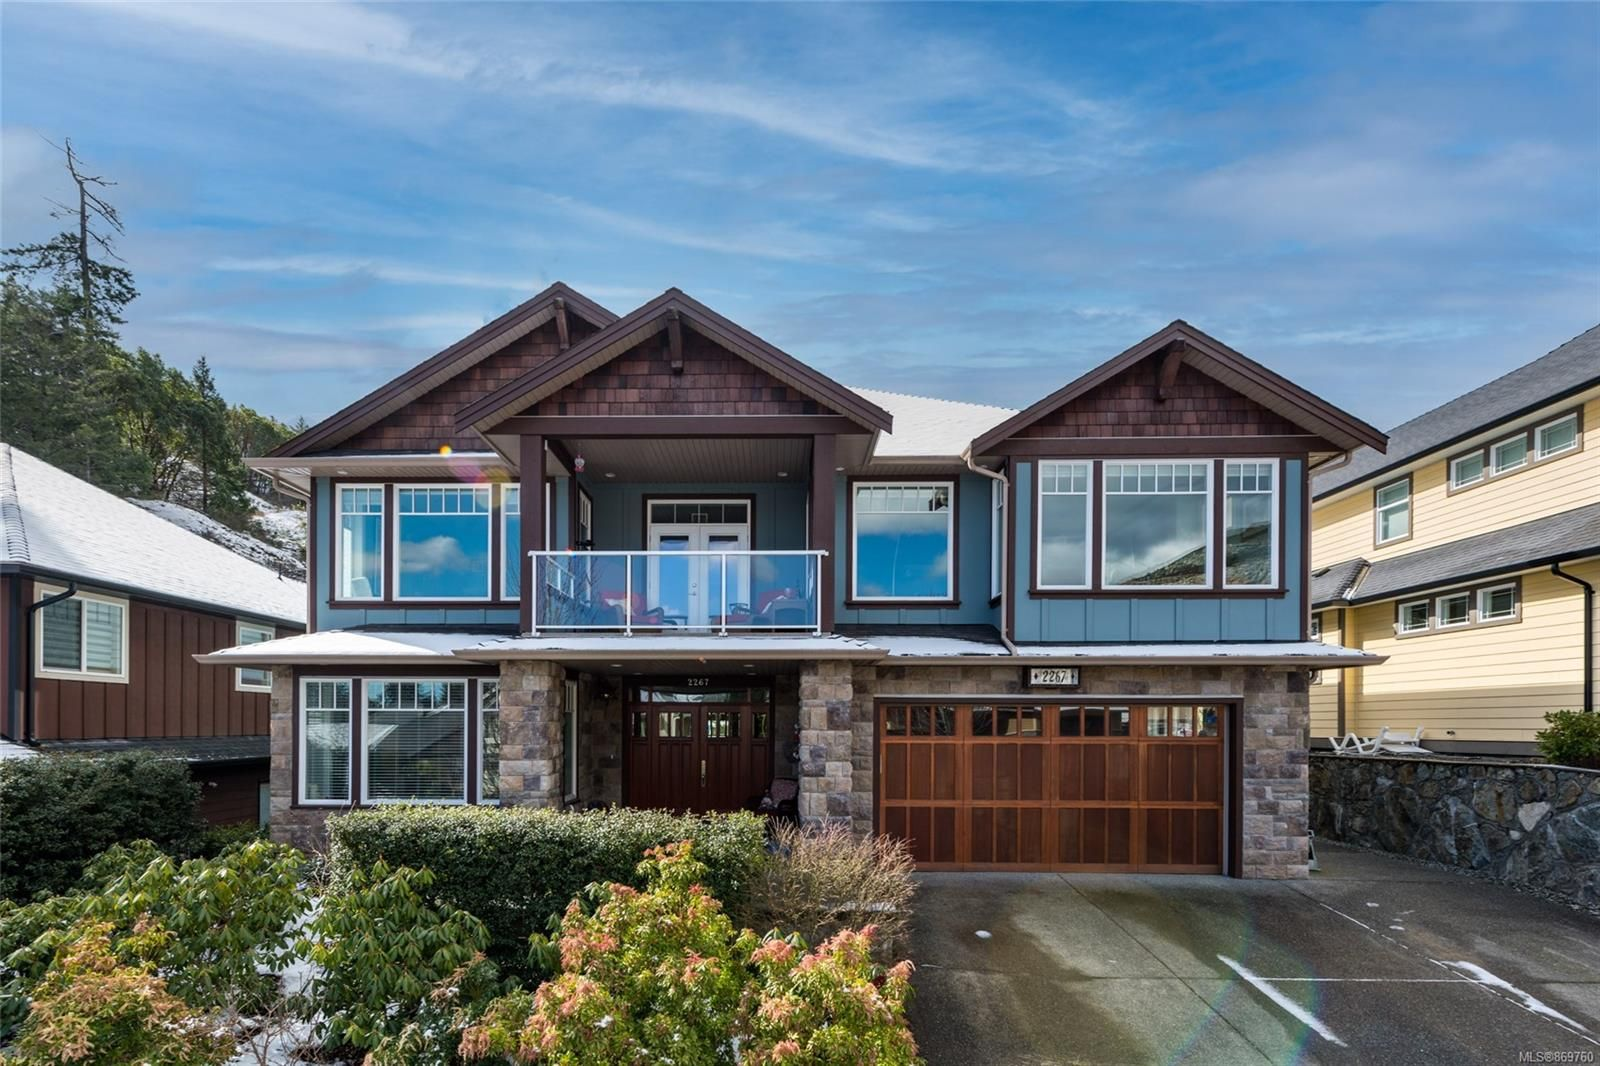 Main Photo: 2267 Players Dr in : La Bear Mountain House for sale (Langford)  : MLS®# 869760